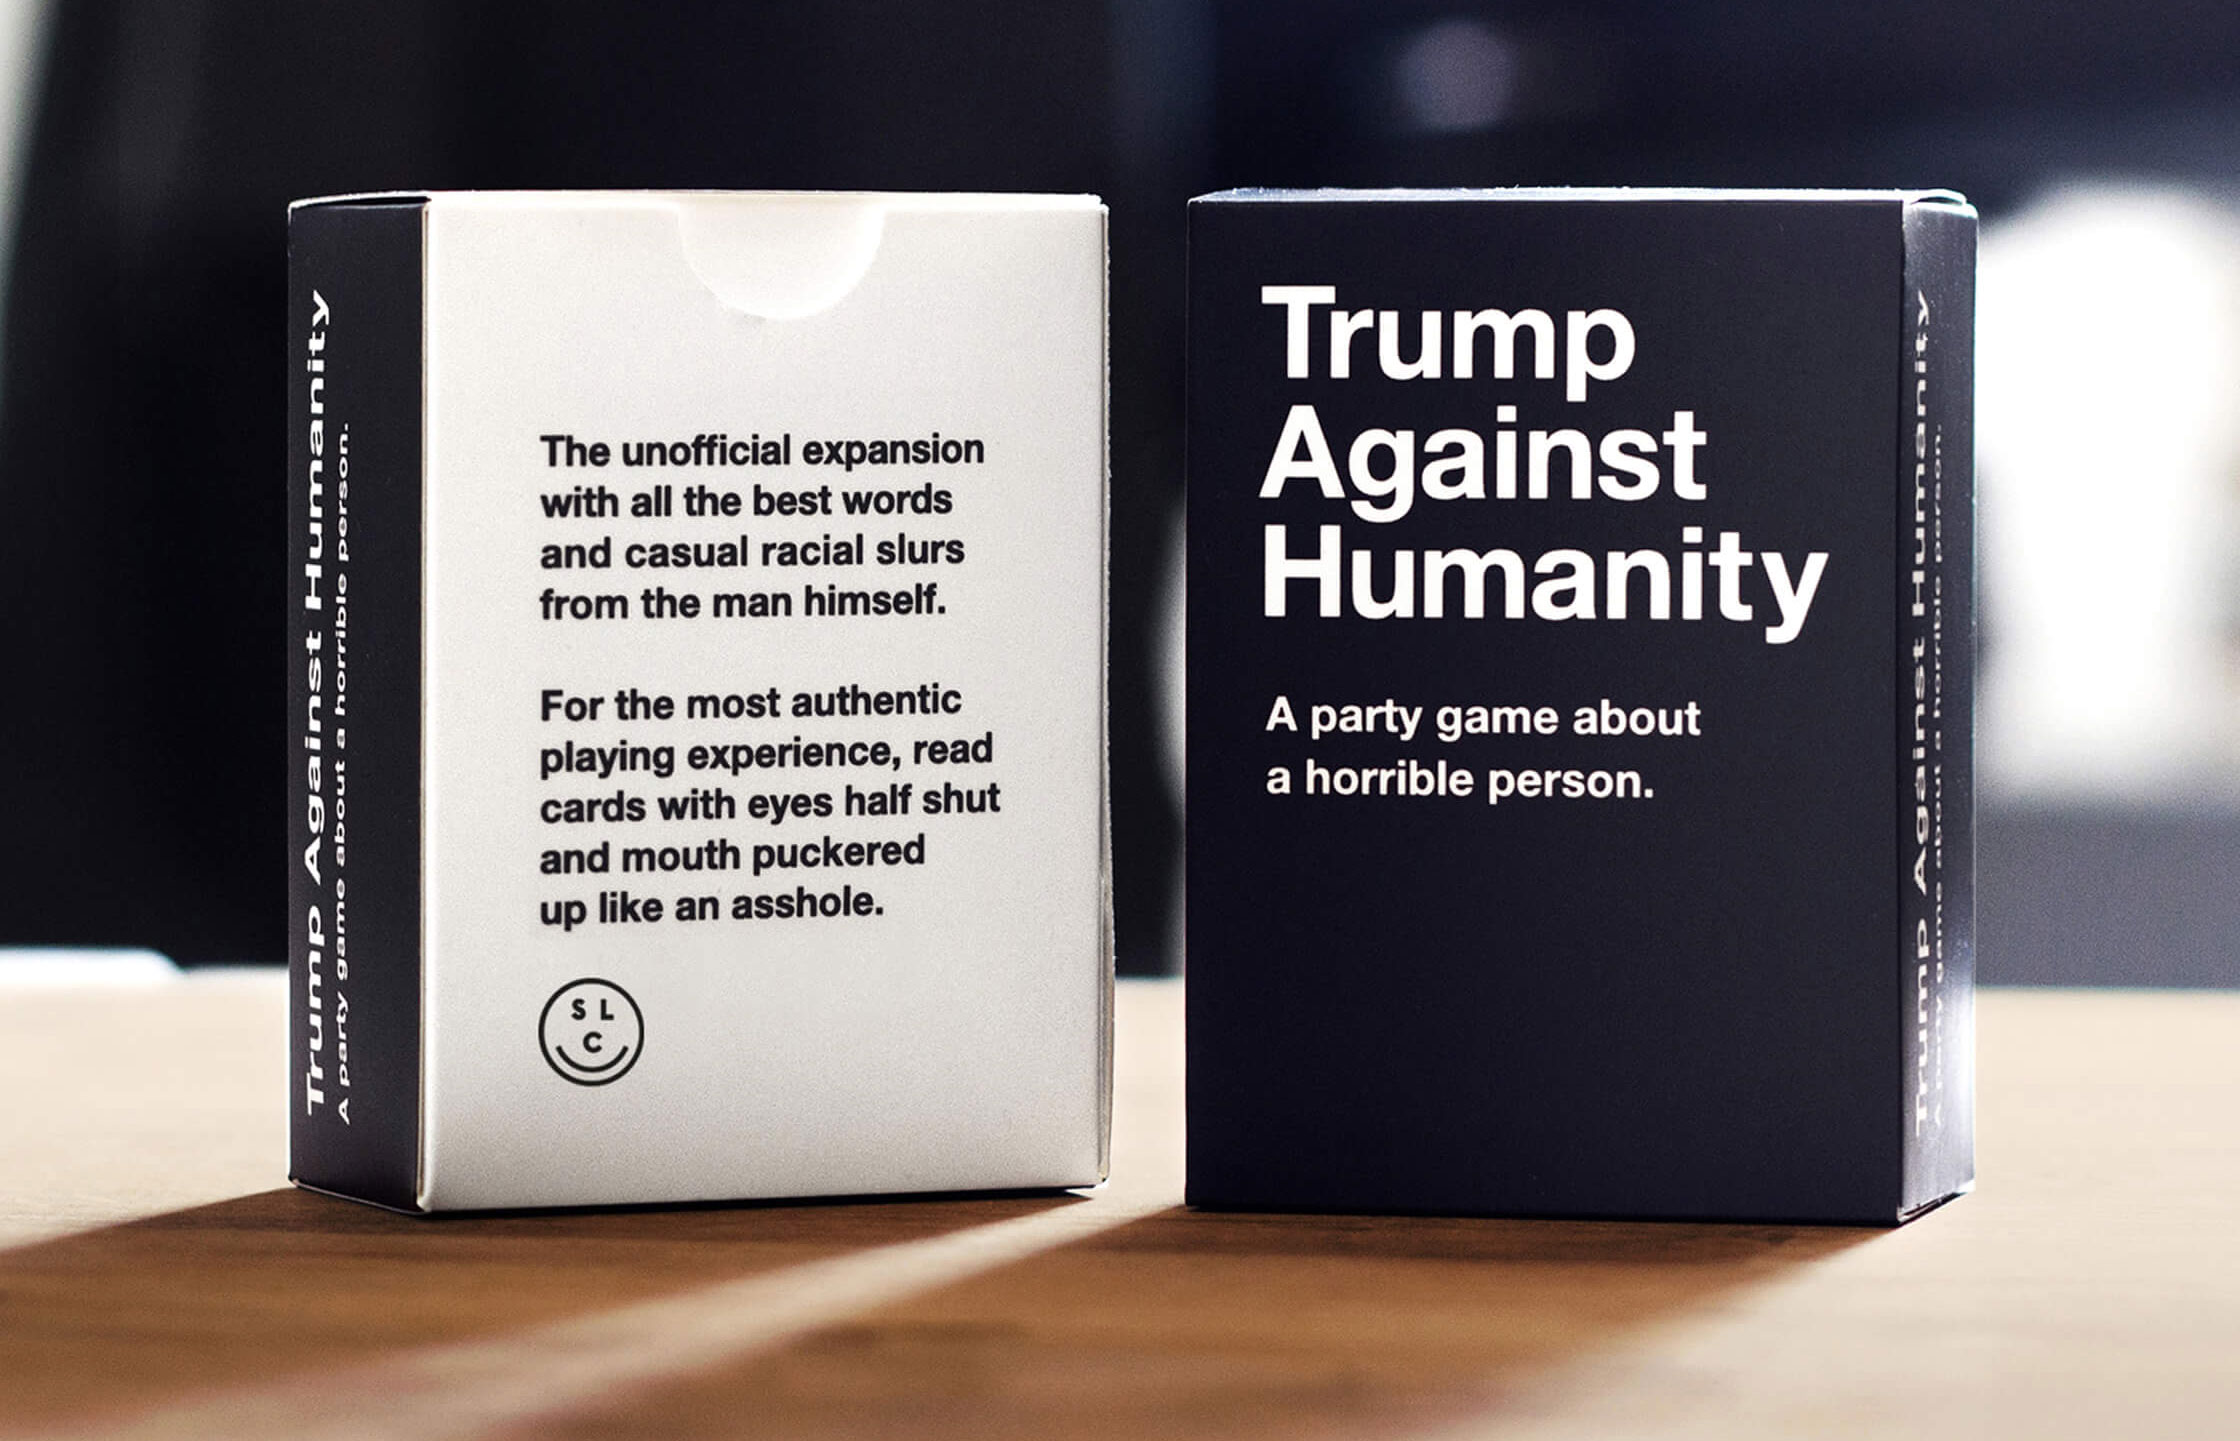 love cards against humanity and hating on donald trump? have we got